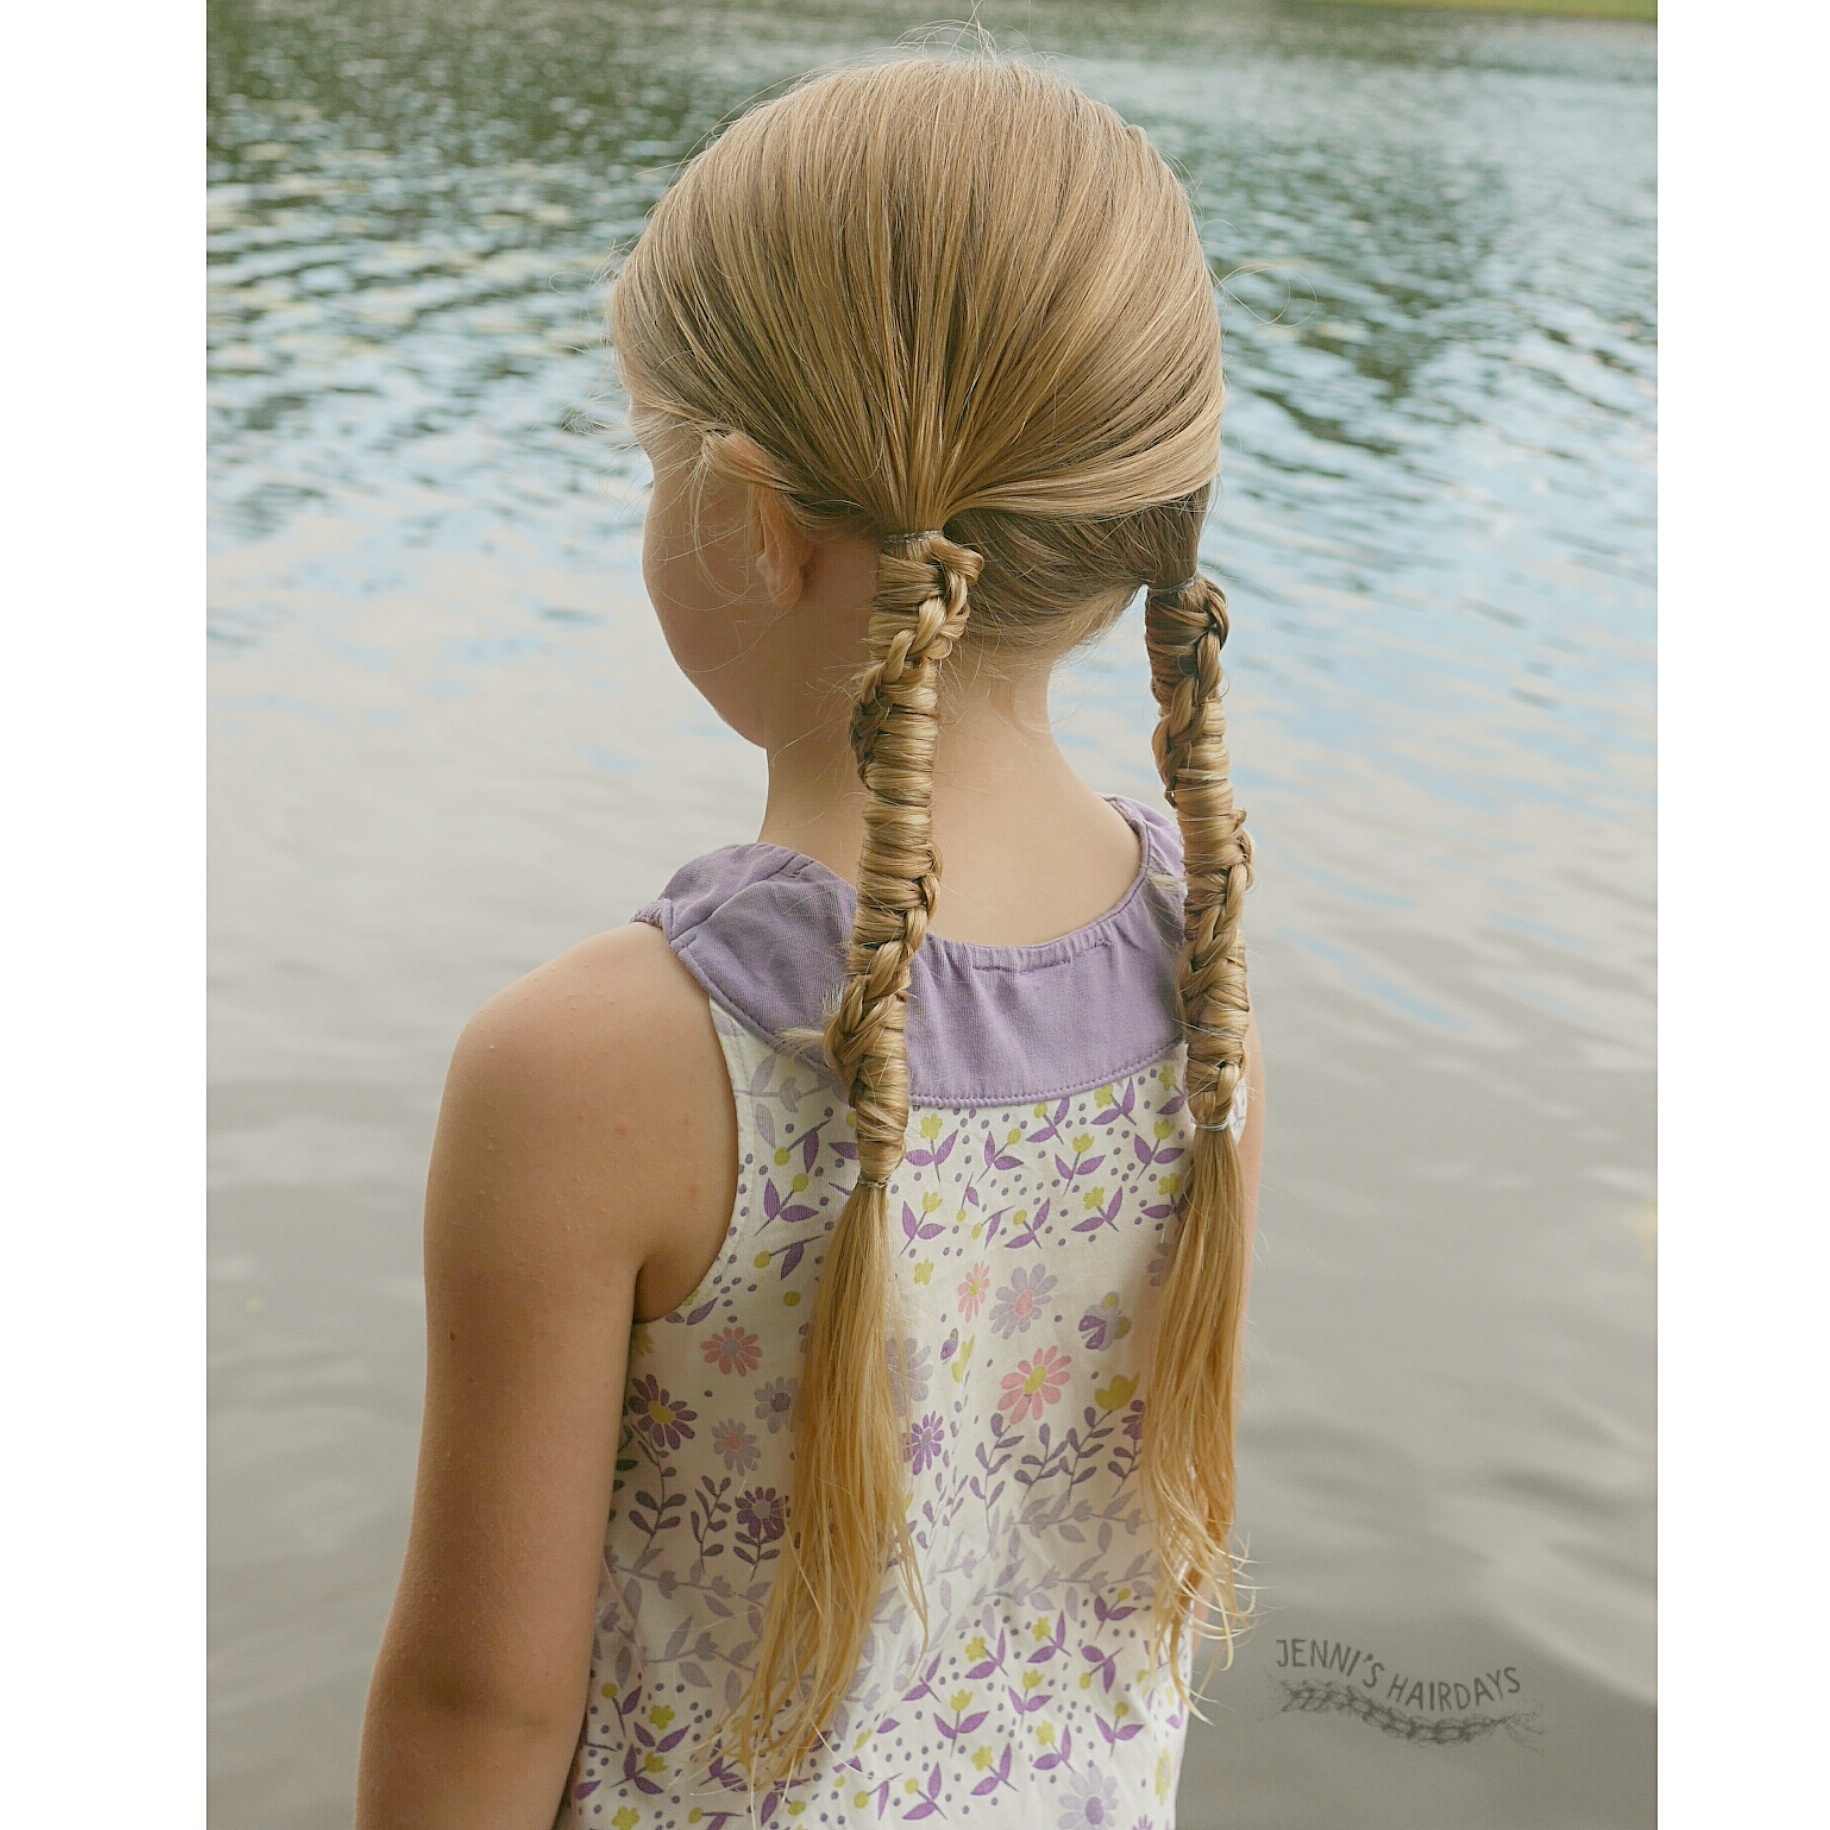 solmuletti, knotted braid